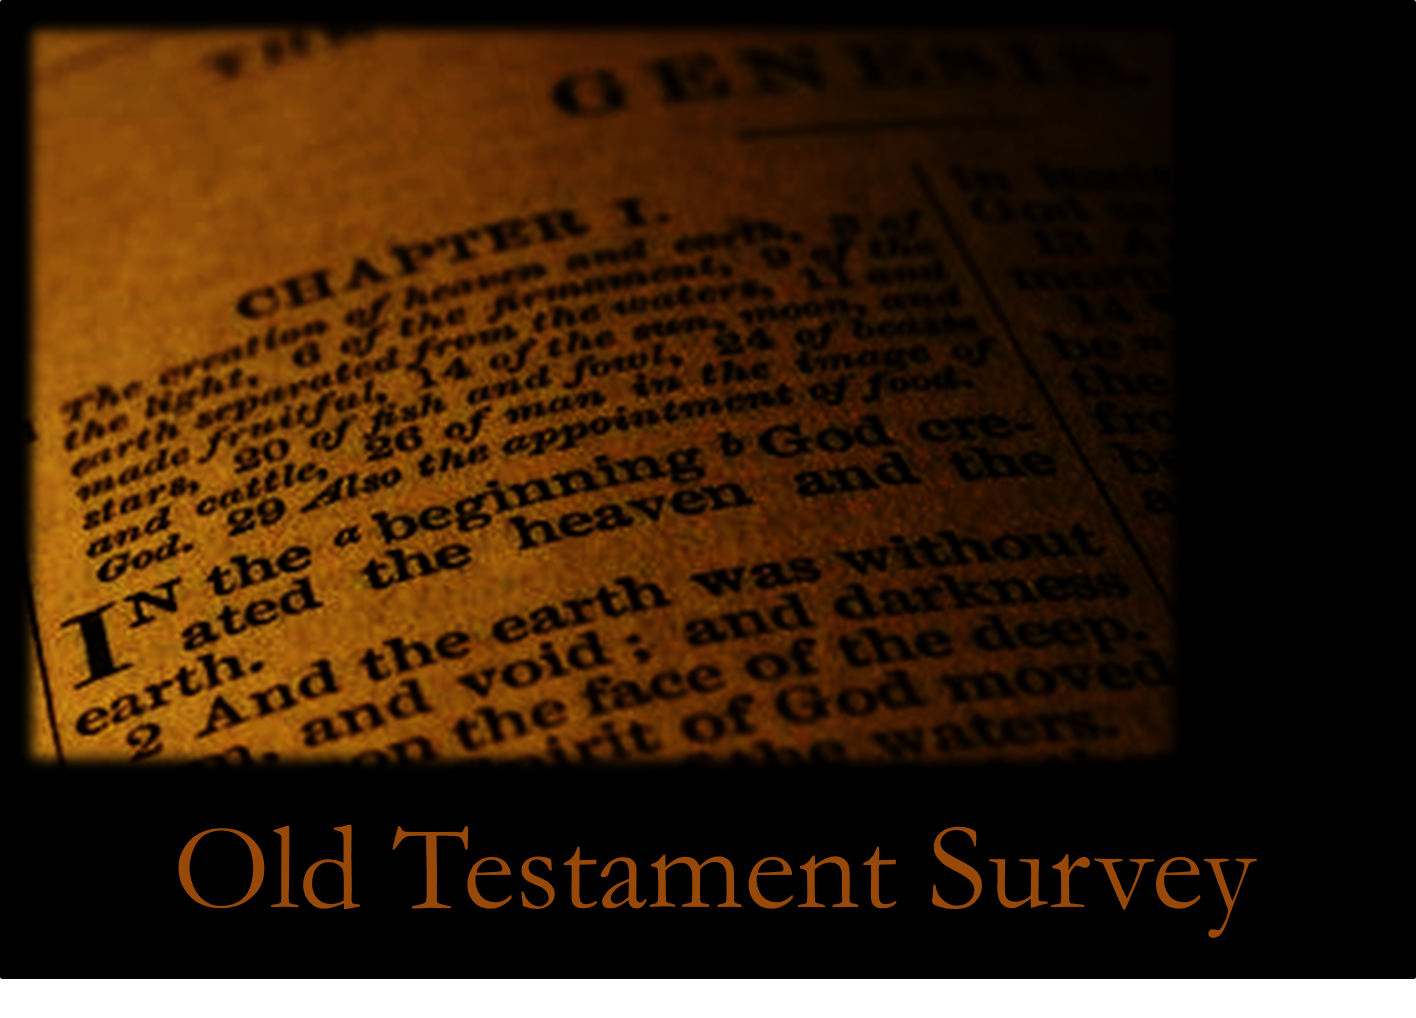 an analysis of the evidences of god in old testament The hebrew bible and the new testament contain many passages outlining  approaches to,  hamas, meaning violence or wrong, is the hebrew bible's  primary term for  including extra-biblical evidence, that herem was a later  addition to hebrew  the philistines capture the ark of the covenant, but god  makes his.